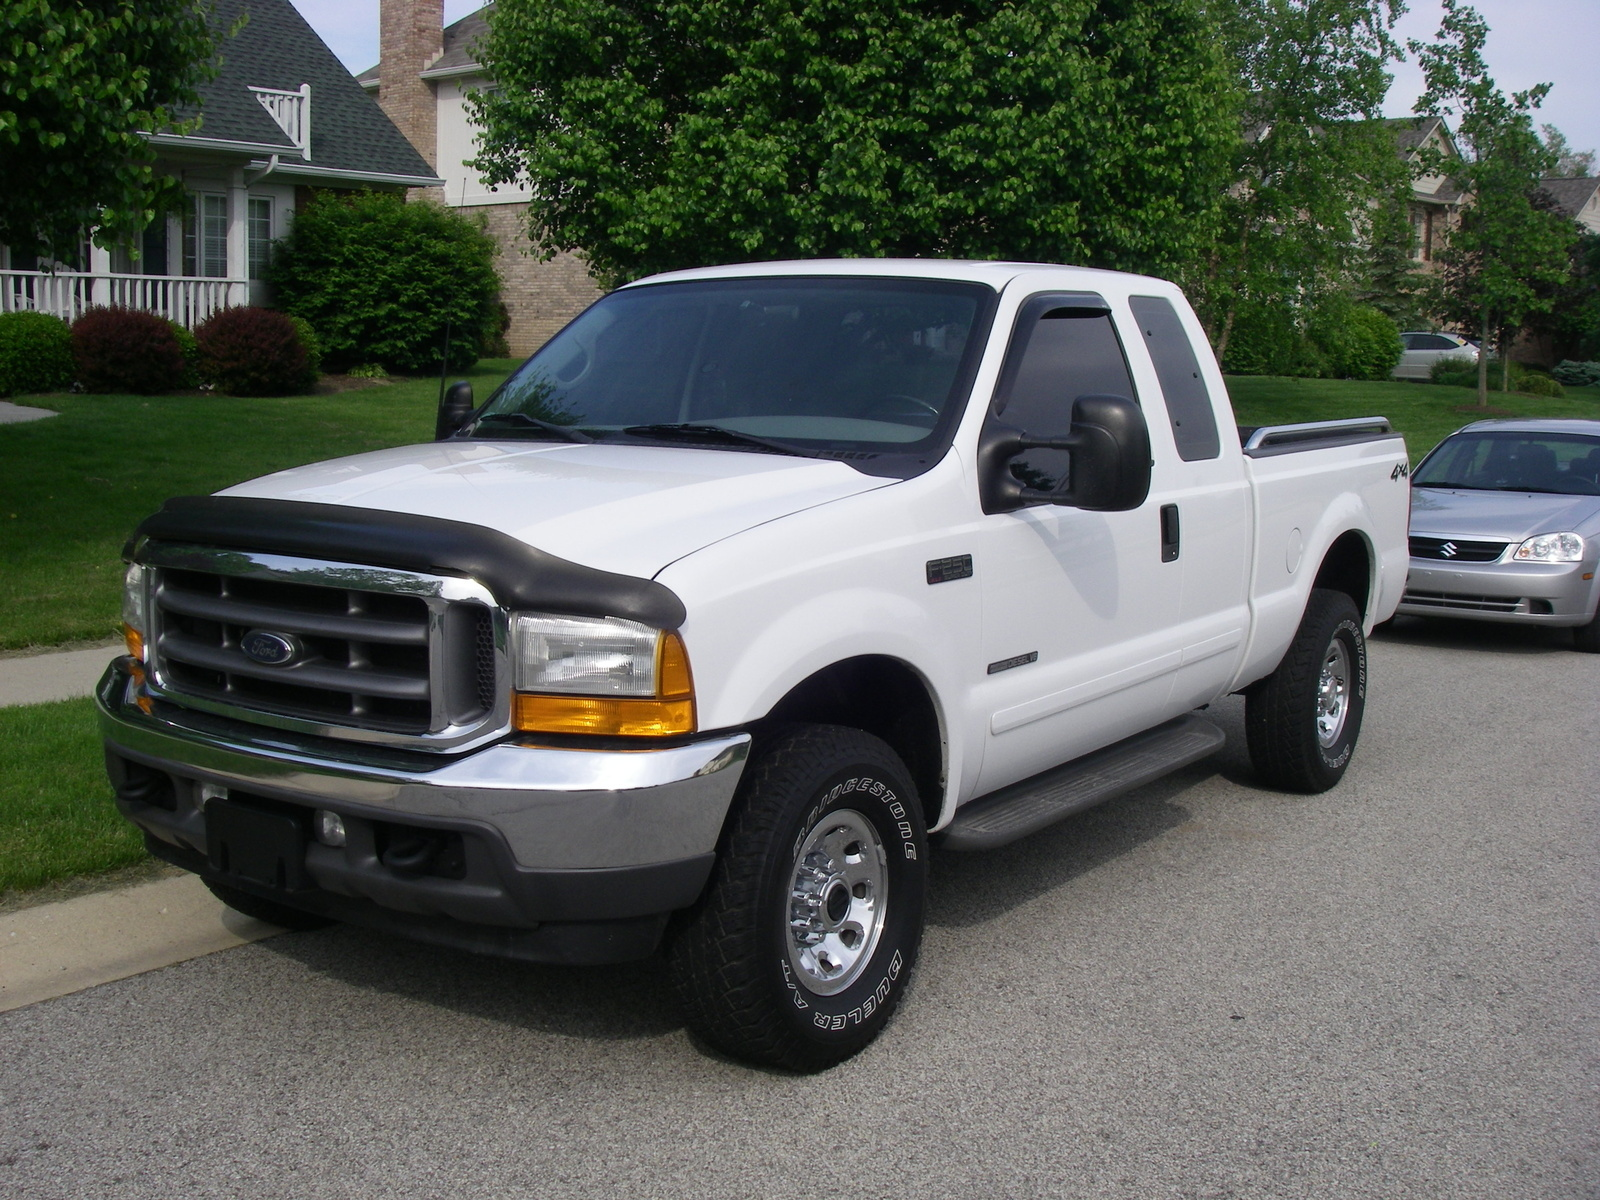 Heritage Volkswagen Subaru >> 2001 Ford F-250 Super Duty - Overview - CarGurus